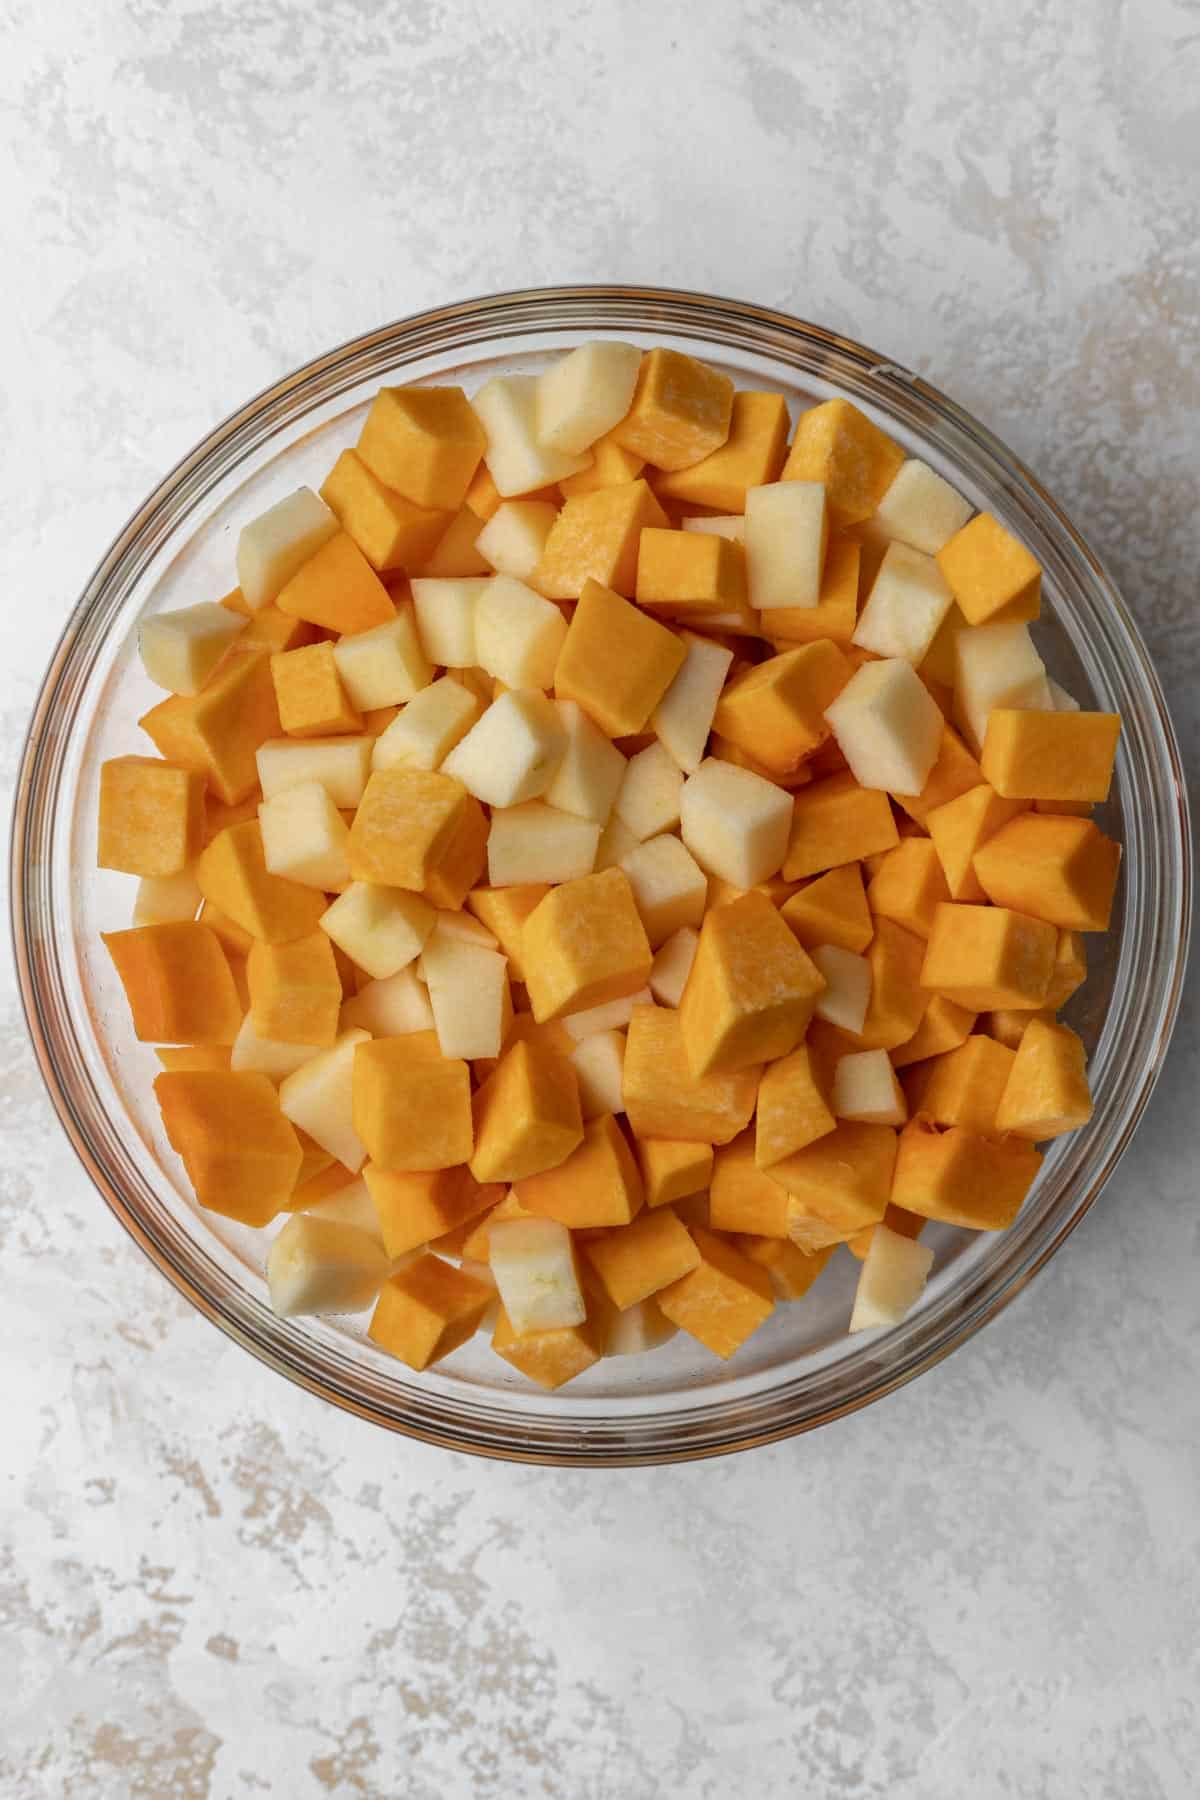 Diced and peeled butternut squash and apples in a glass mixing bowl.